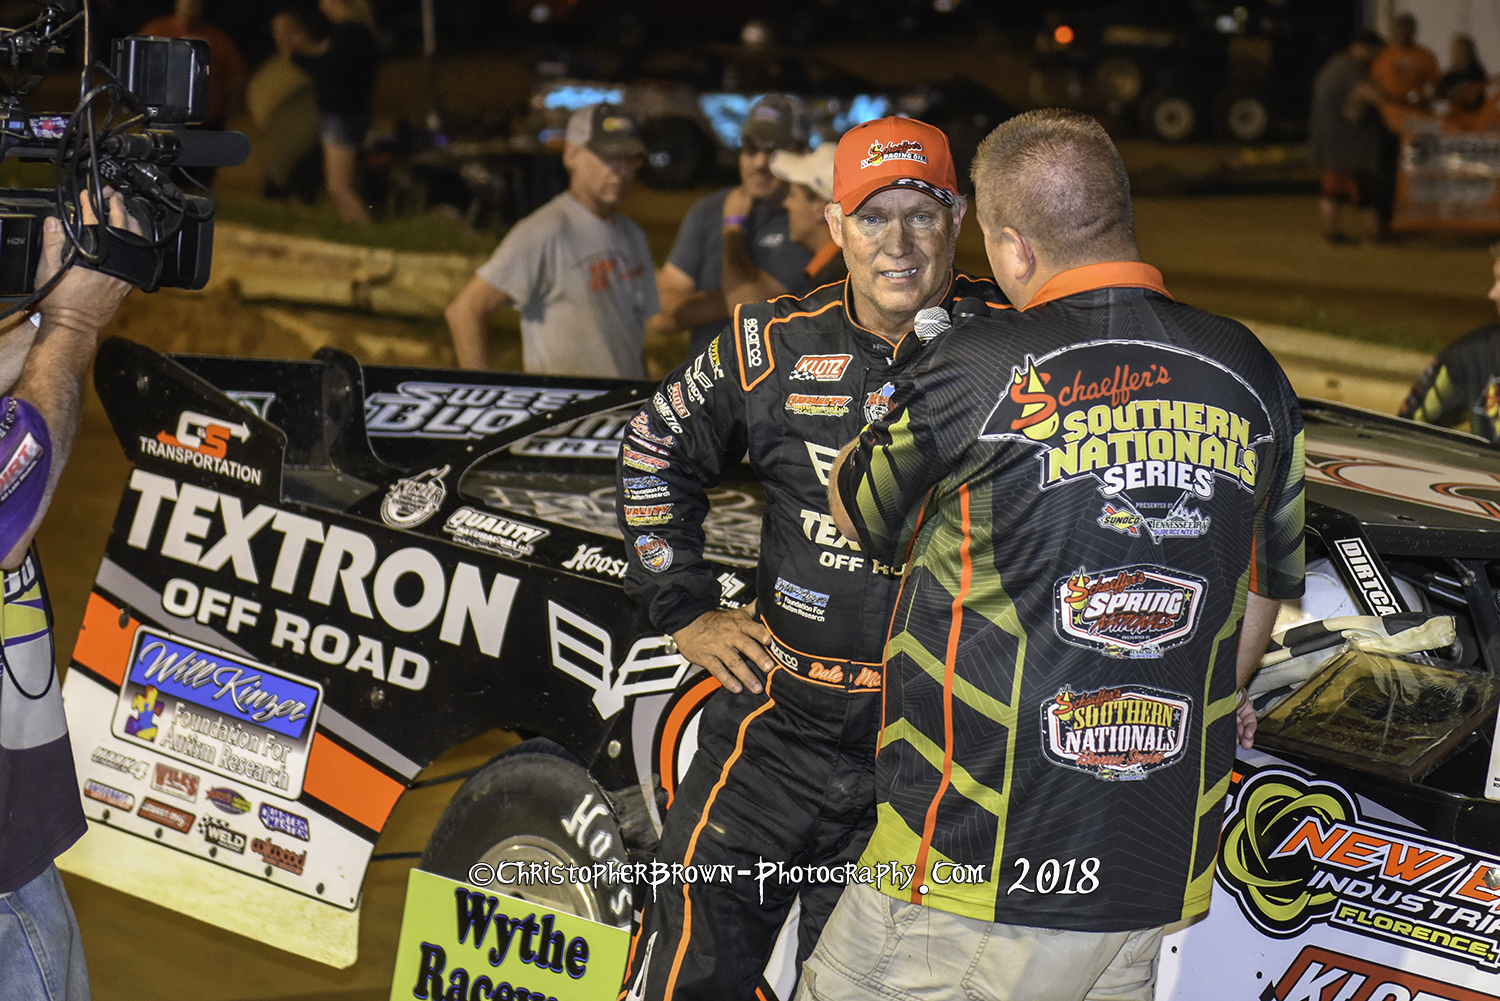 Dale McDowell cruises to win at Wythe Raceway